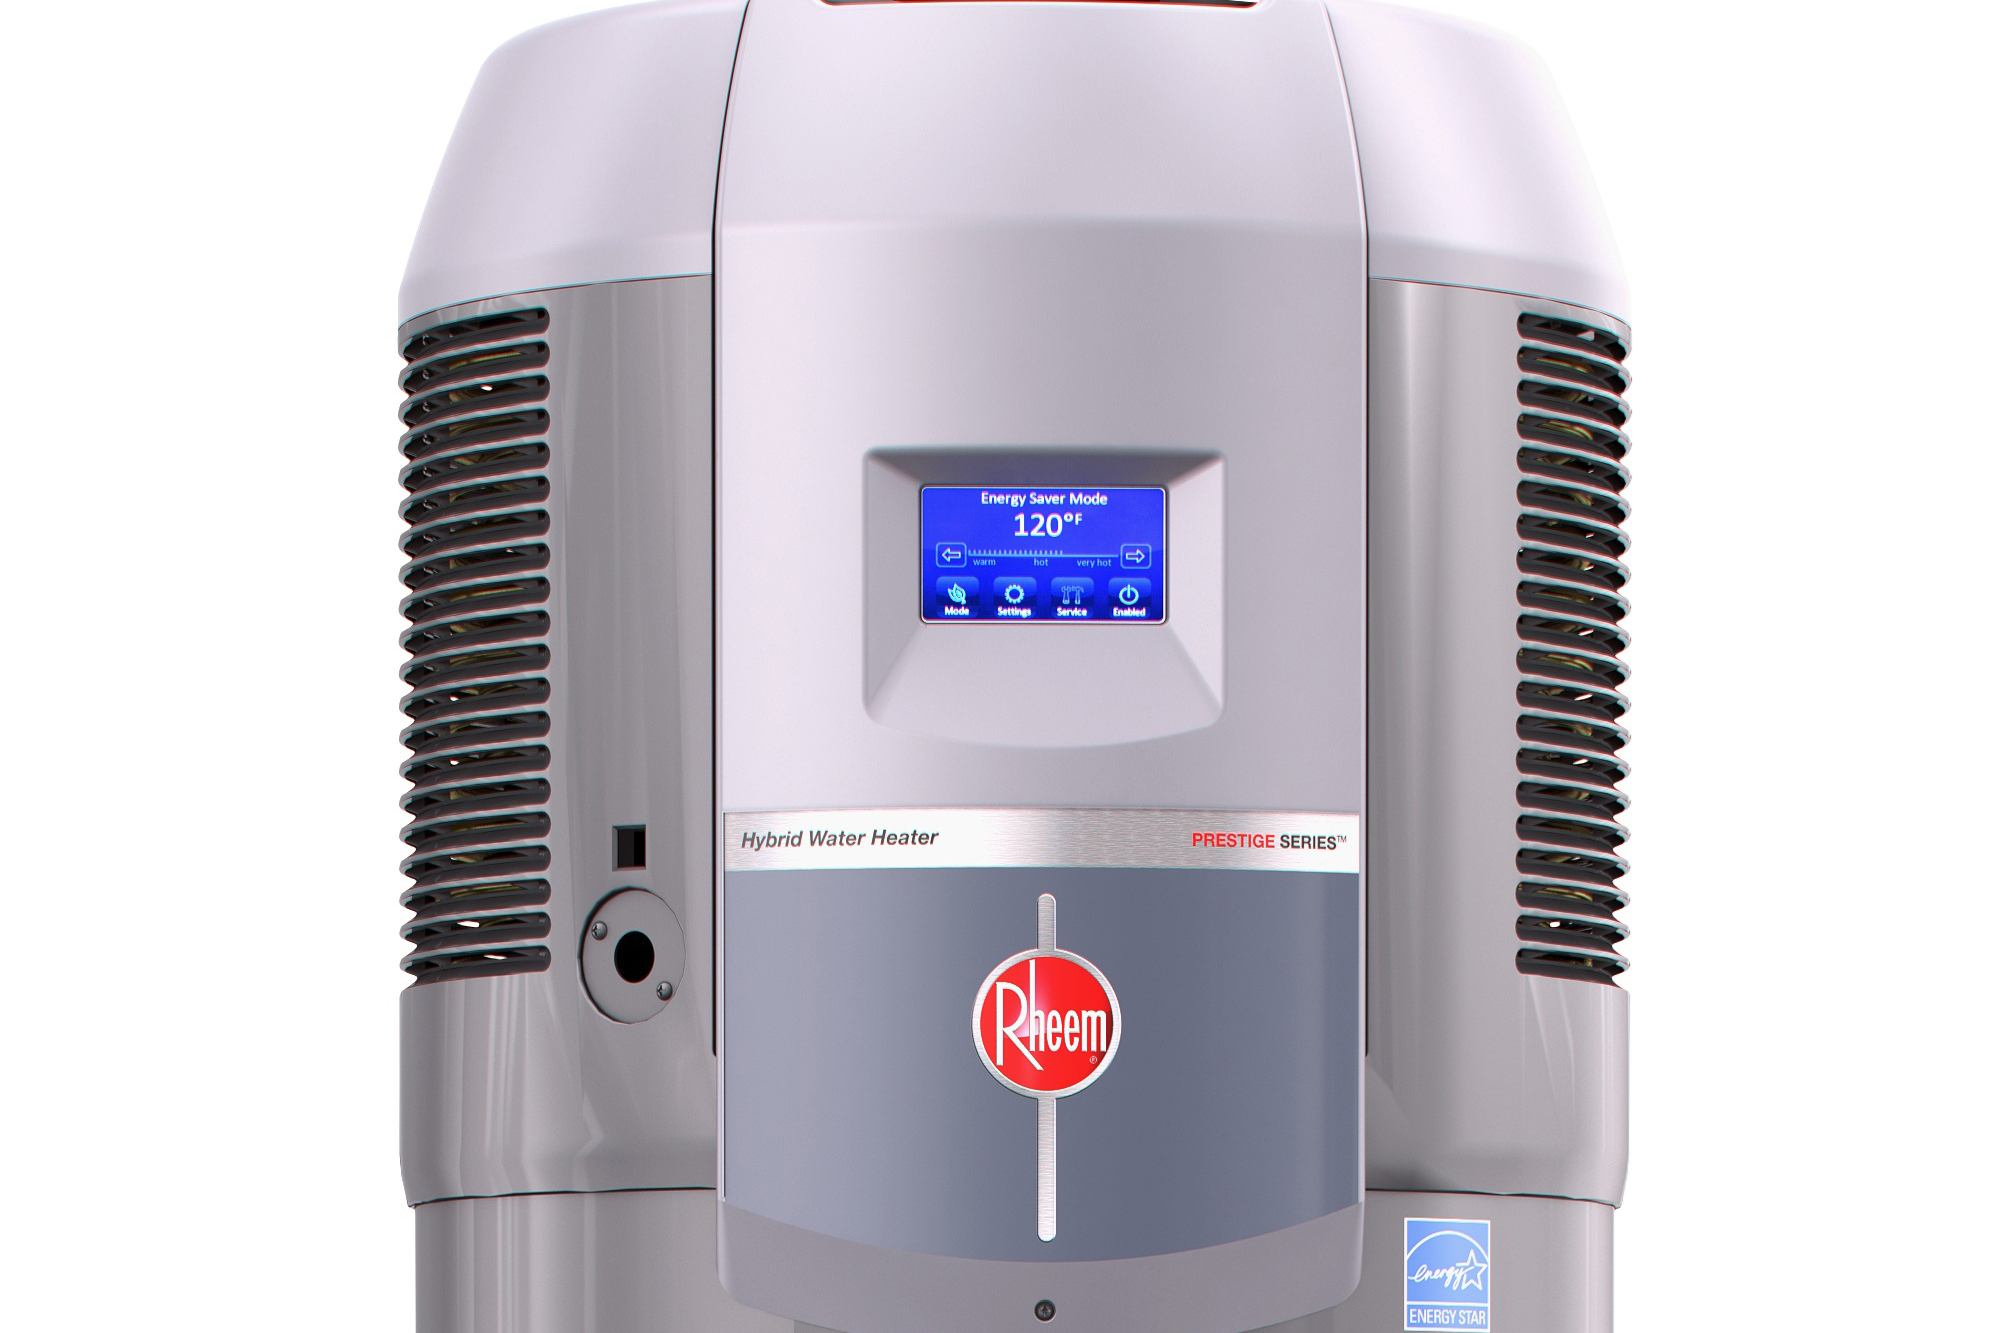 5-conservative-rheem-power-vent-water-heater-problems